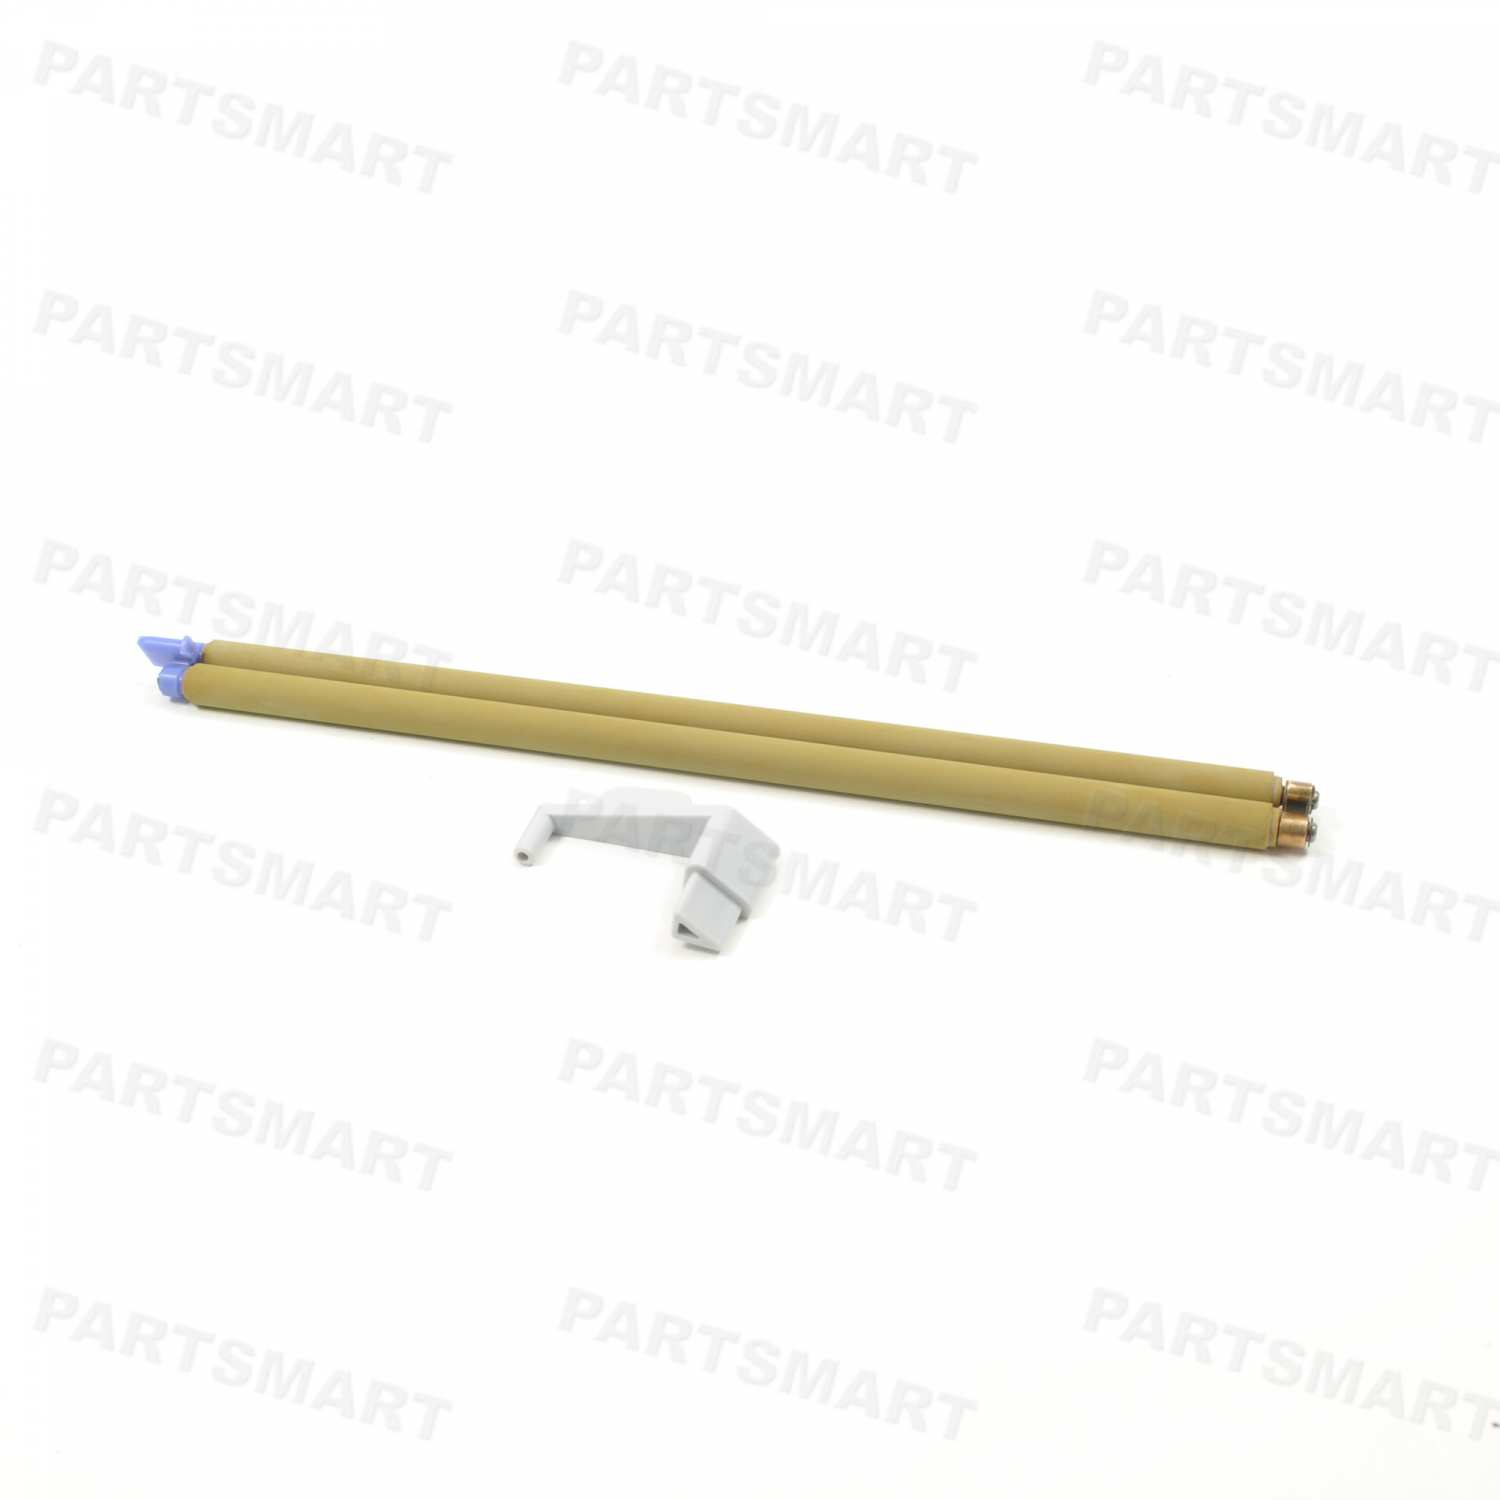 40X5852 PCR (Charge Roller) for Lexmark T65x